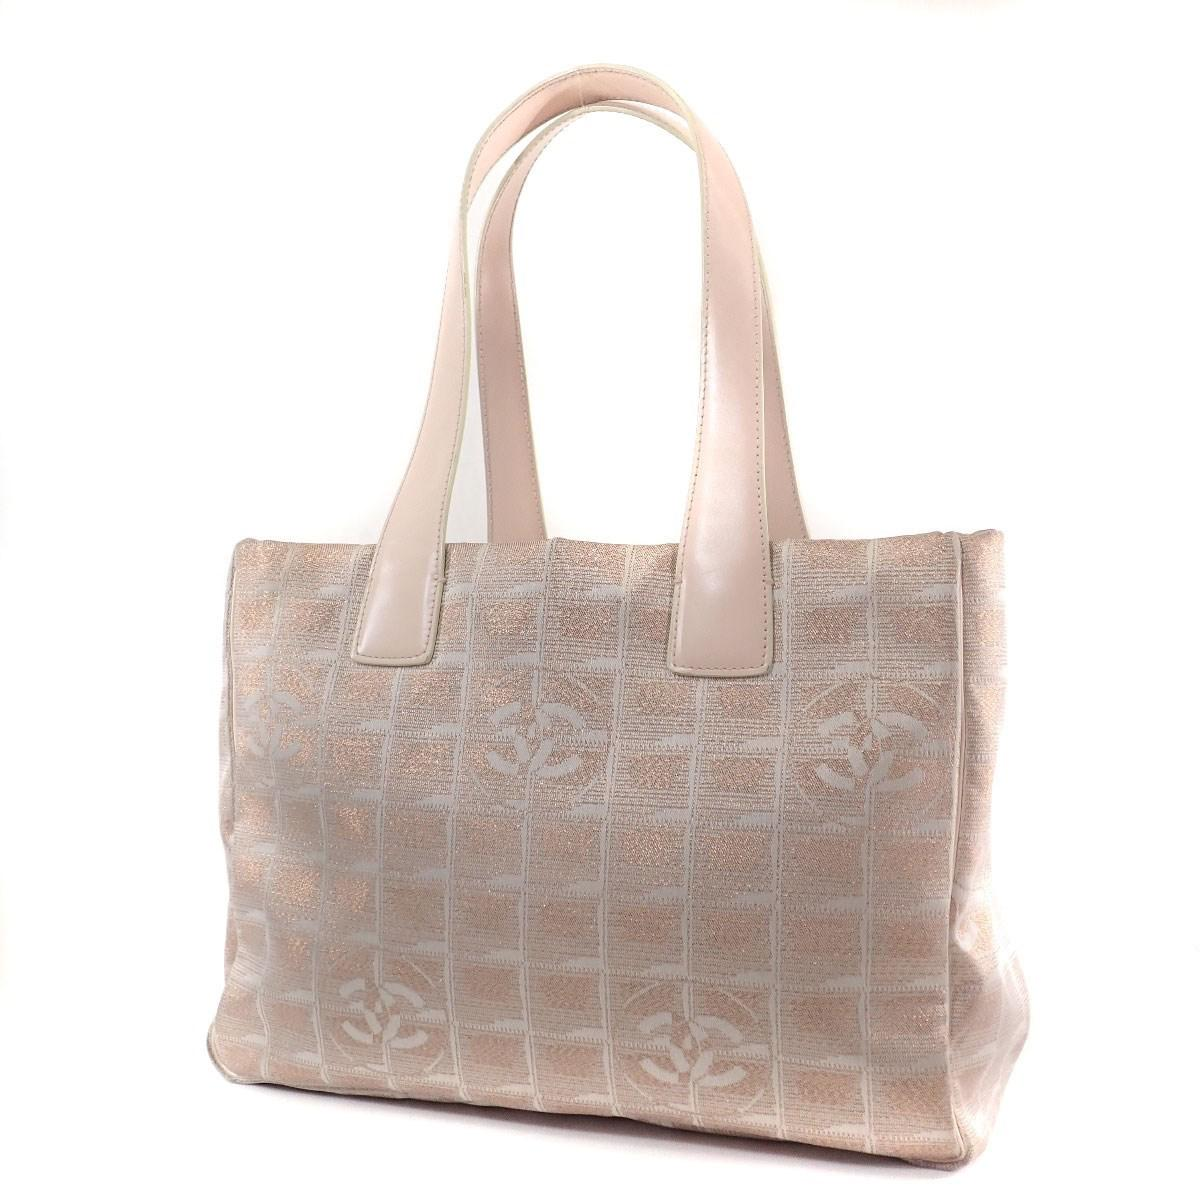 0172fa5ec27b Lyst - Chanel Nylon Jacquard Tote Bag New Travel Line in Natural